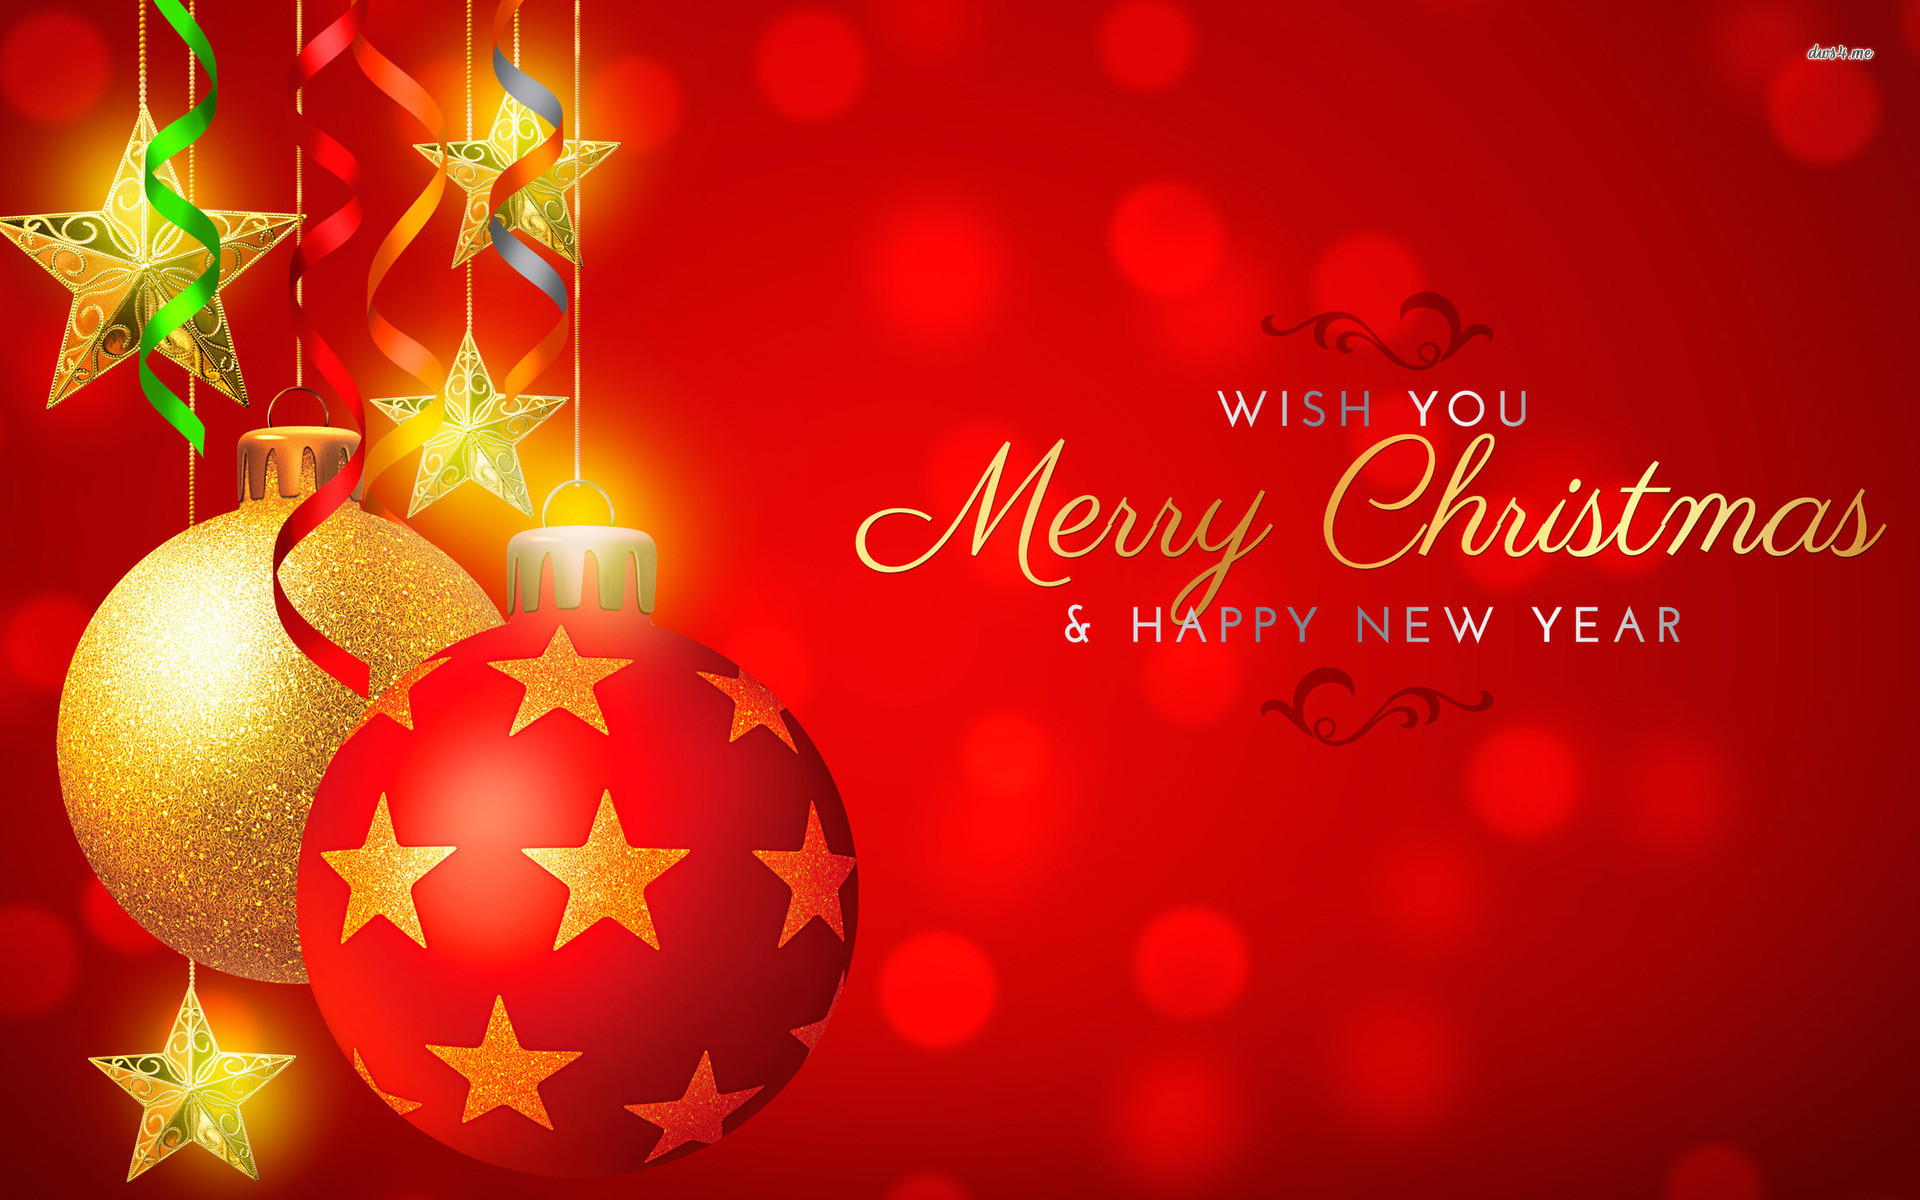 10 Merry Christmas Wallpapers Full HD for Desktop PC | All for Windows .